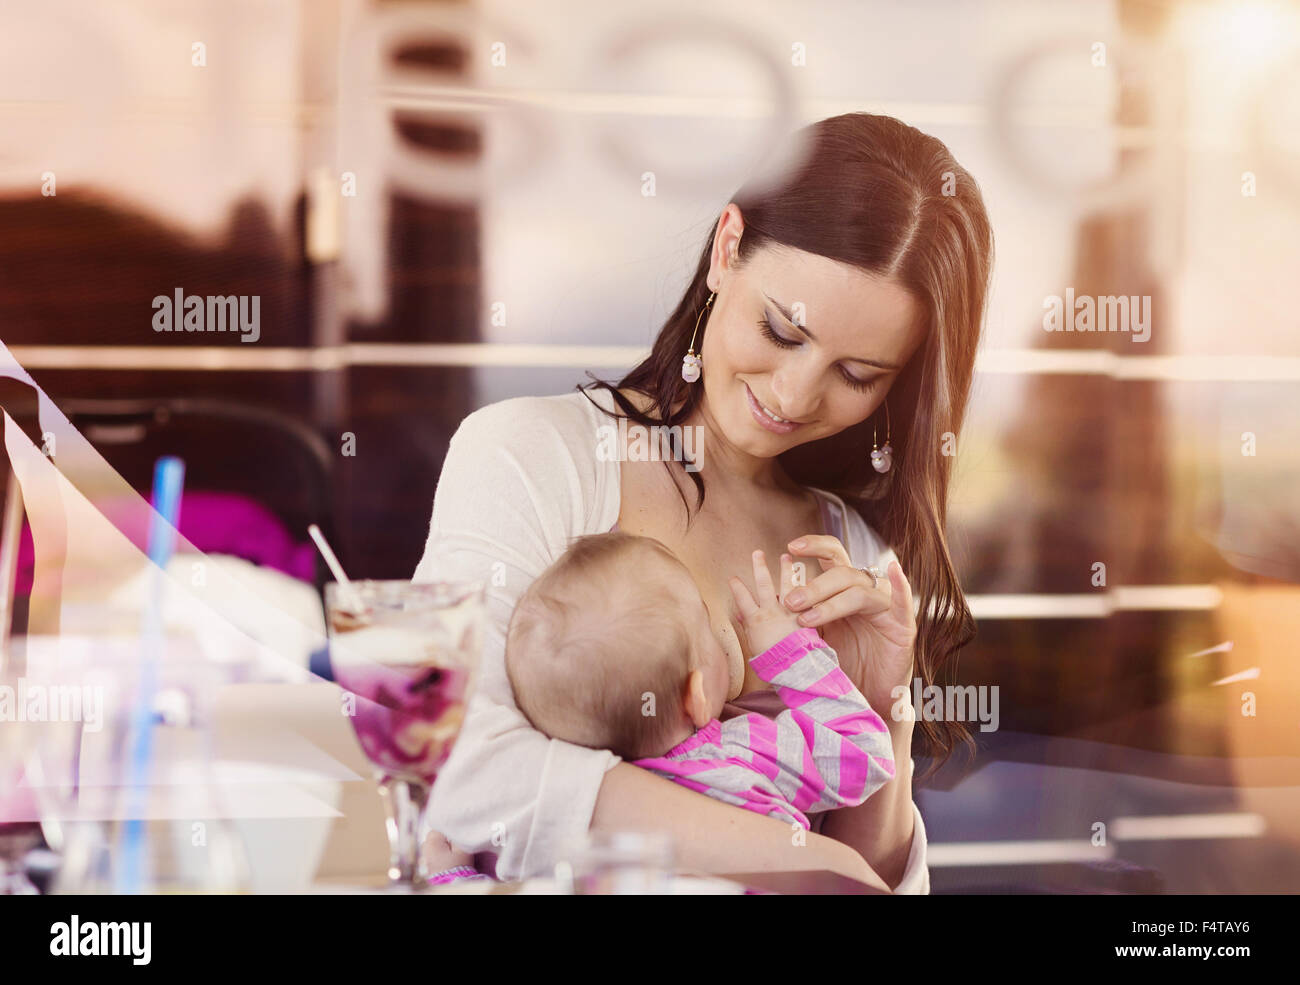 Mother breastfeeding her baby - Stock Image